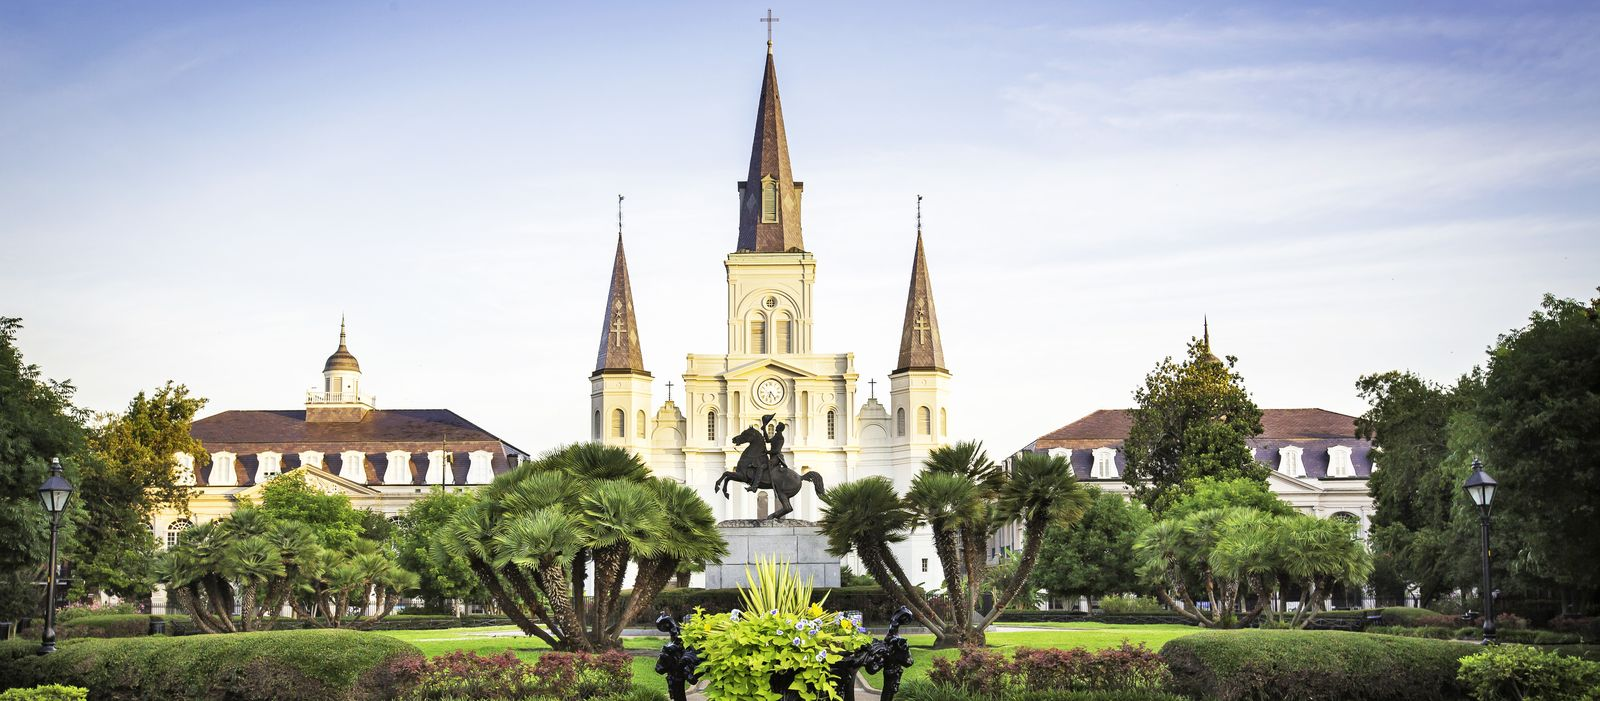 St. Louis Cathedral und Andrew Jackson Statue auf dem Jackson Square im French Quarter in New Orleans, Luisiana